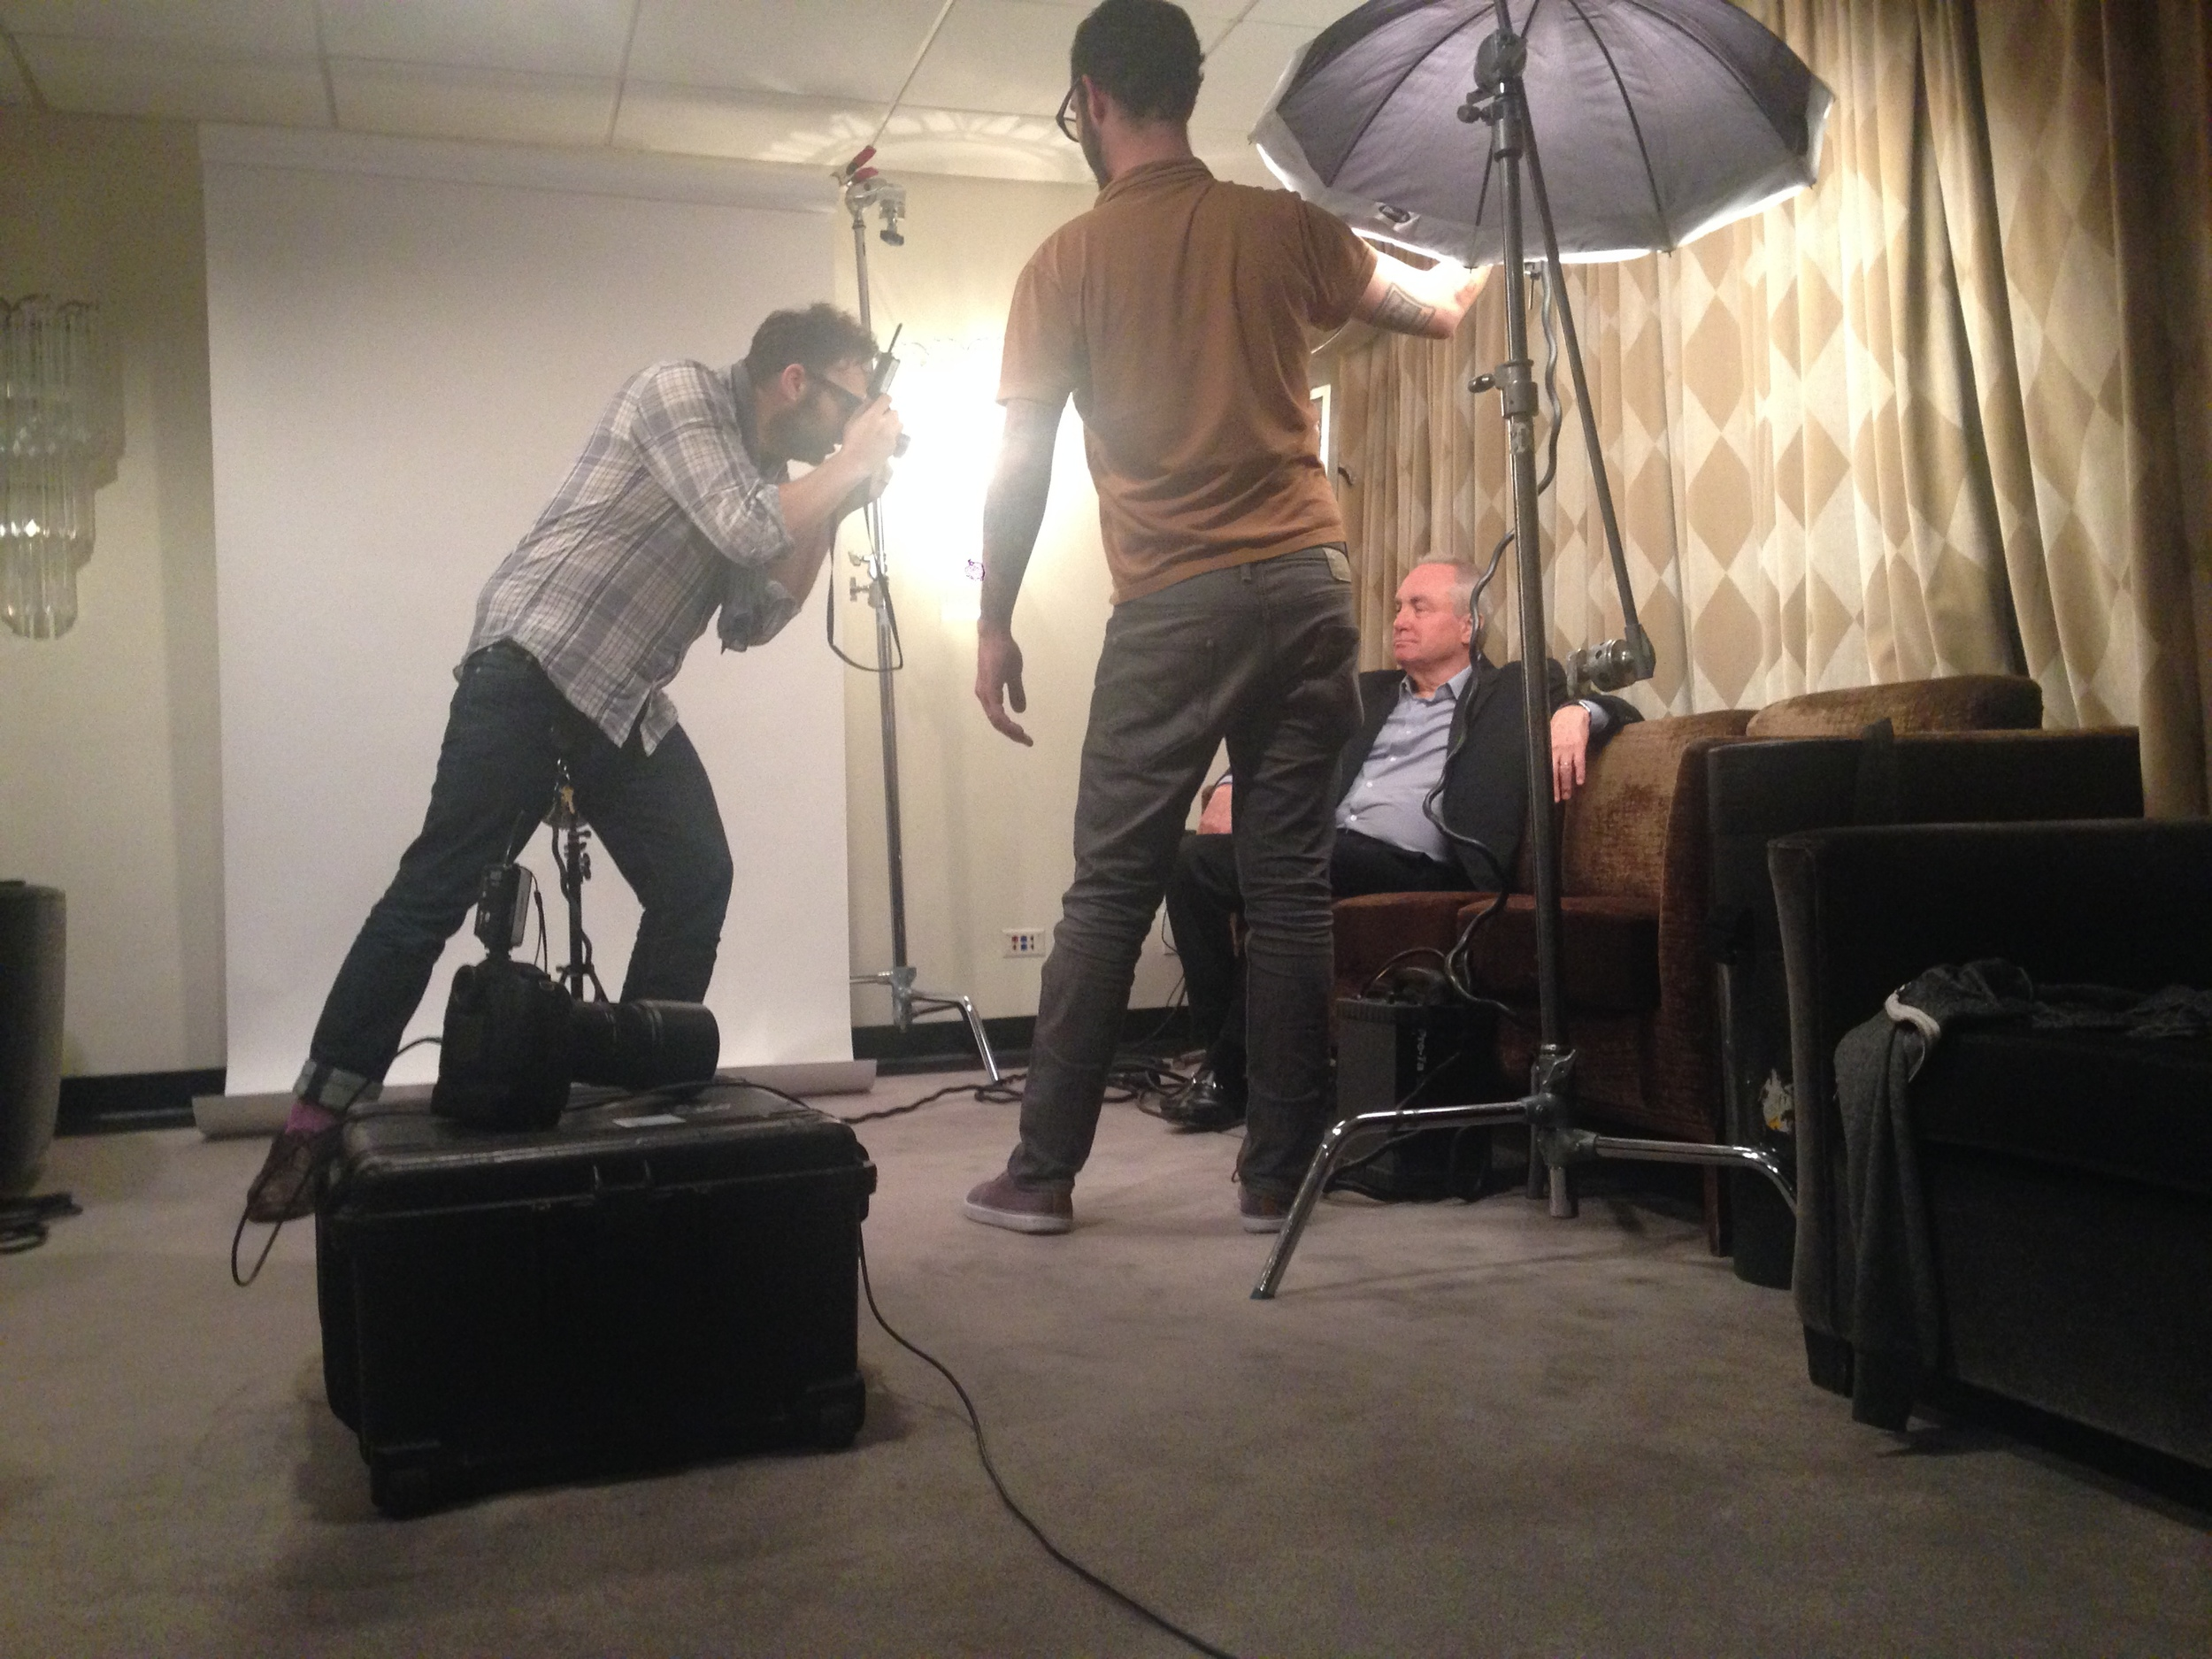 Mark Mann (who photographed President Obama for Esquire in just 4 minutes), working fast with Lorne Michaels for AwardsLine inside a 6-minute window between tapings of The Tonight Show and Late Night (with SNL rehearsals happening behind that curtain).